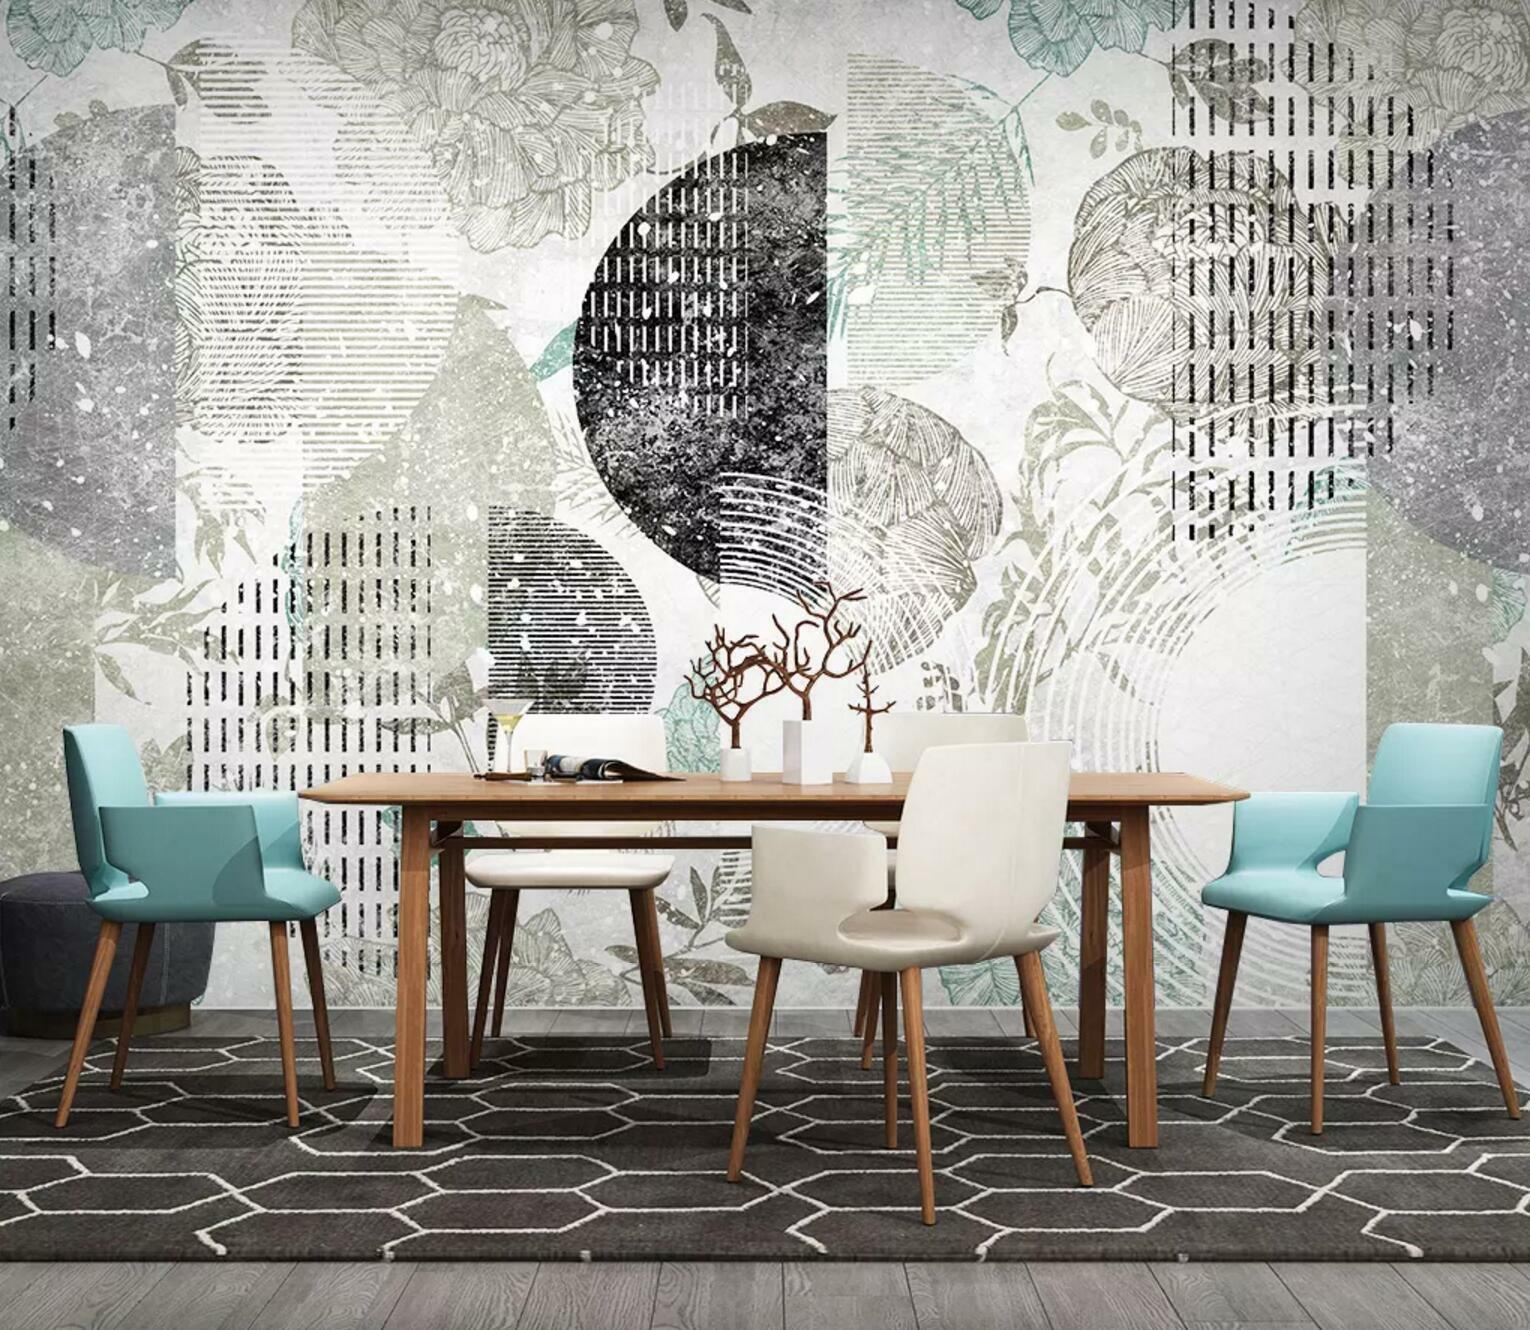 3D Fashion Floral 666 Wall Paper Exclusive MXY Wallpaper Mural Decal Indoor wall